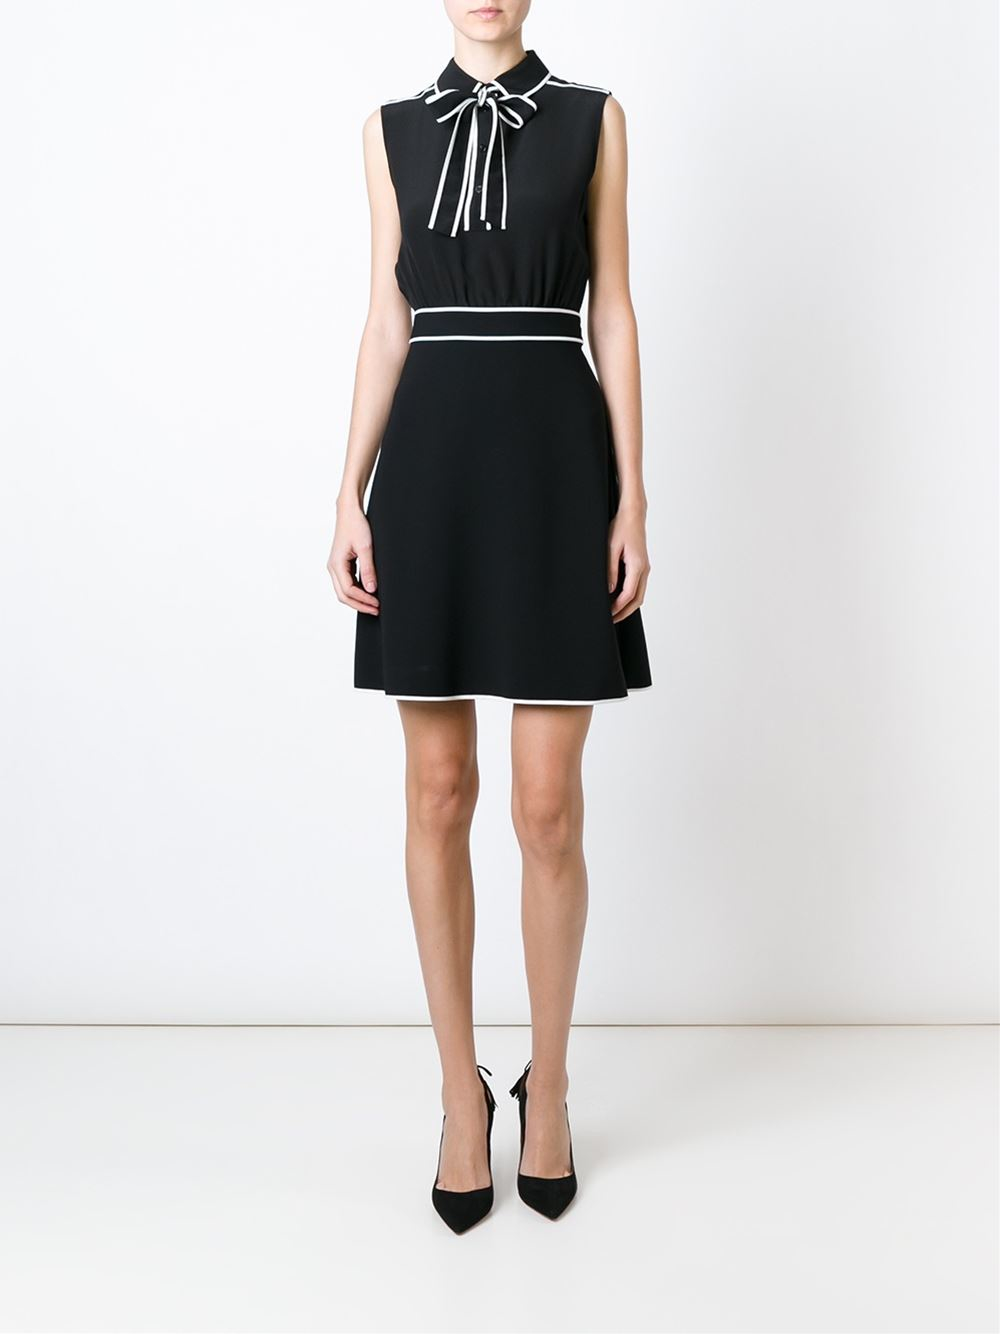 Boutique Moschino Bow Detail Sleeveless Dress In Black Lyst